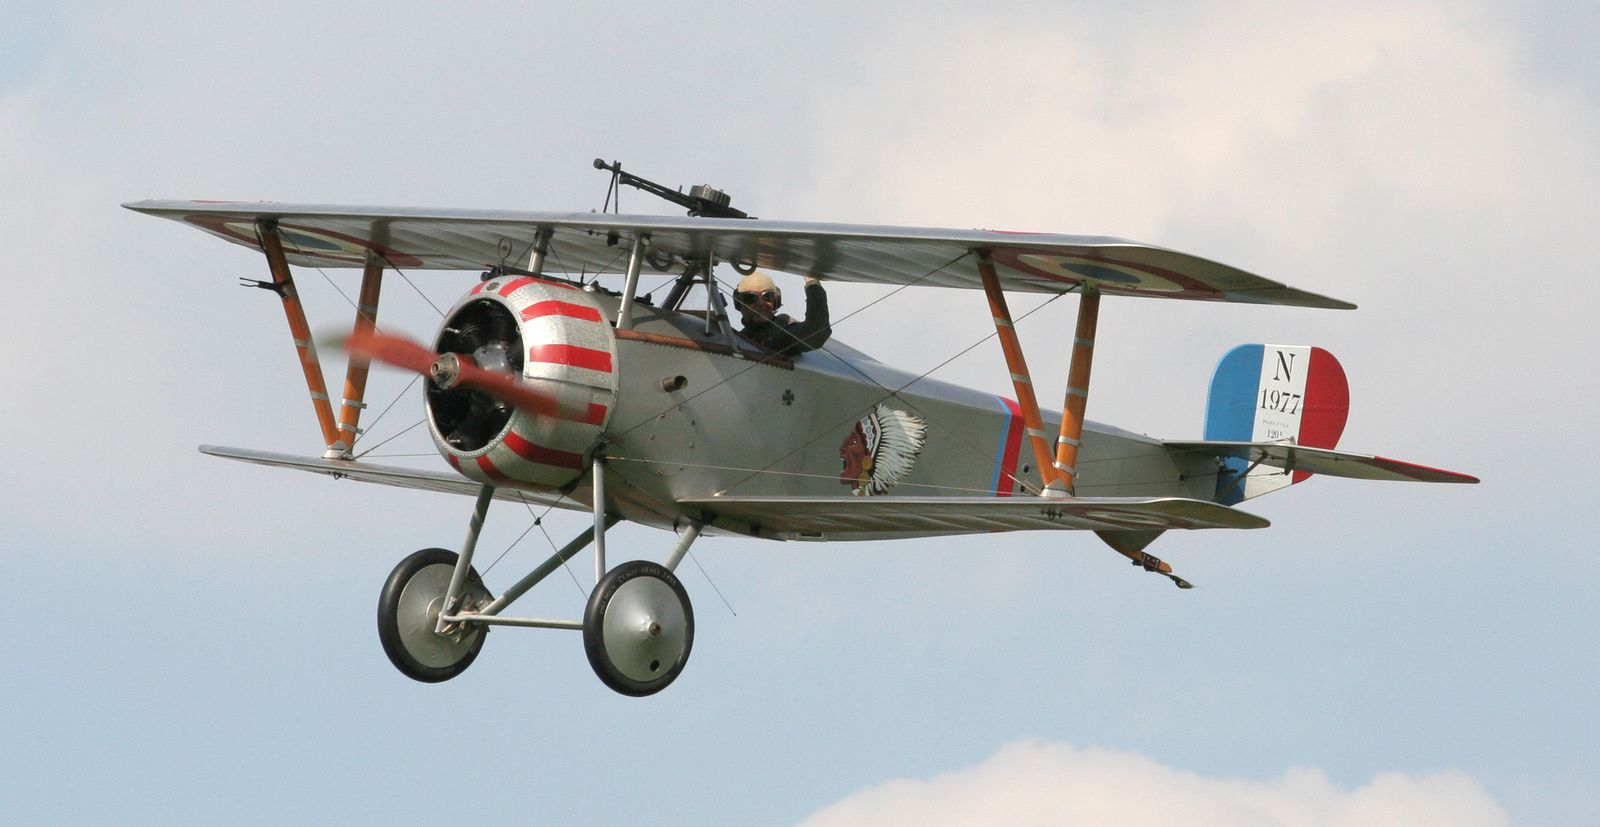 Réplique d'un Nieuport 23, arborant les marquages de l'Escadrille La Fayette - Photo © Tom Smith / via Wikimedia.